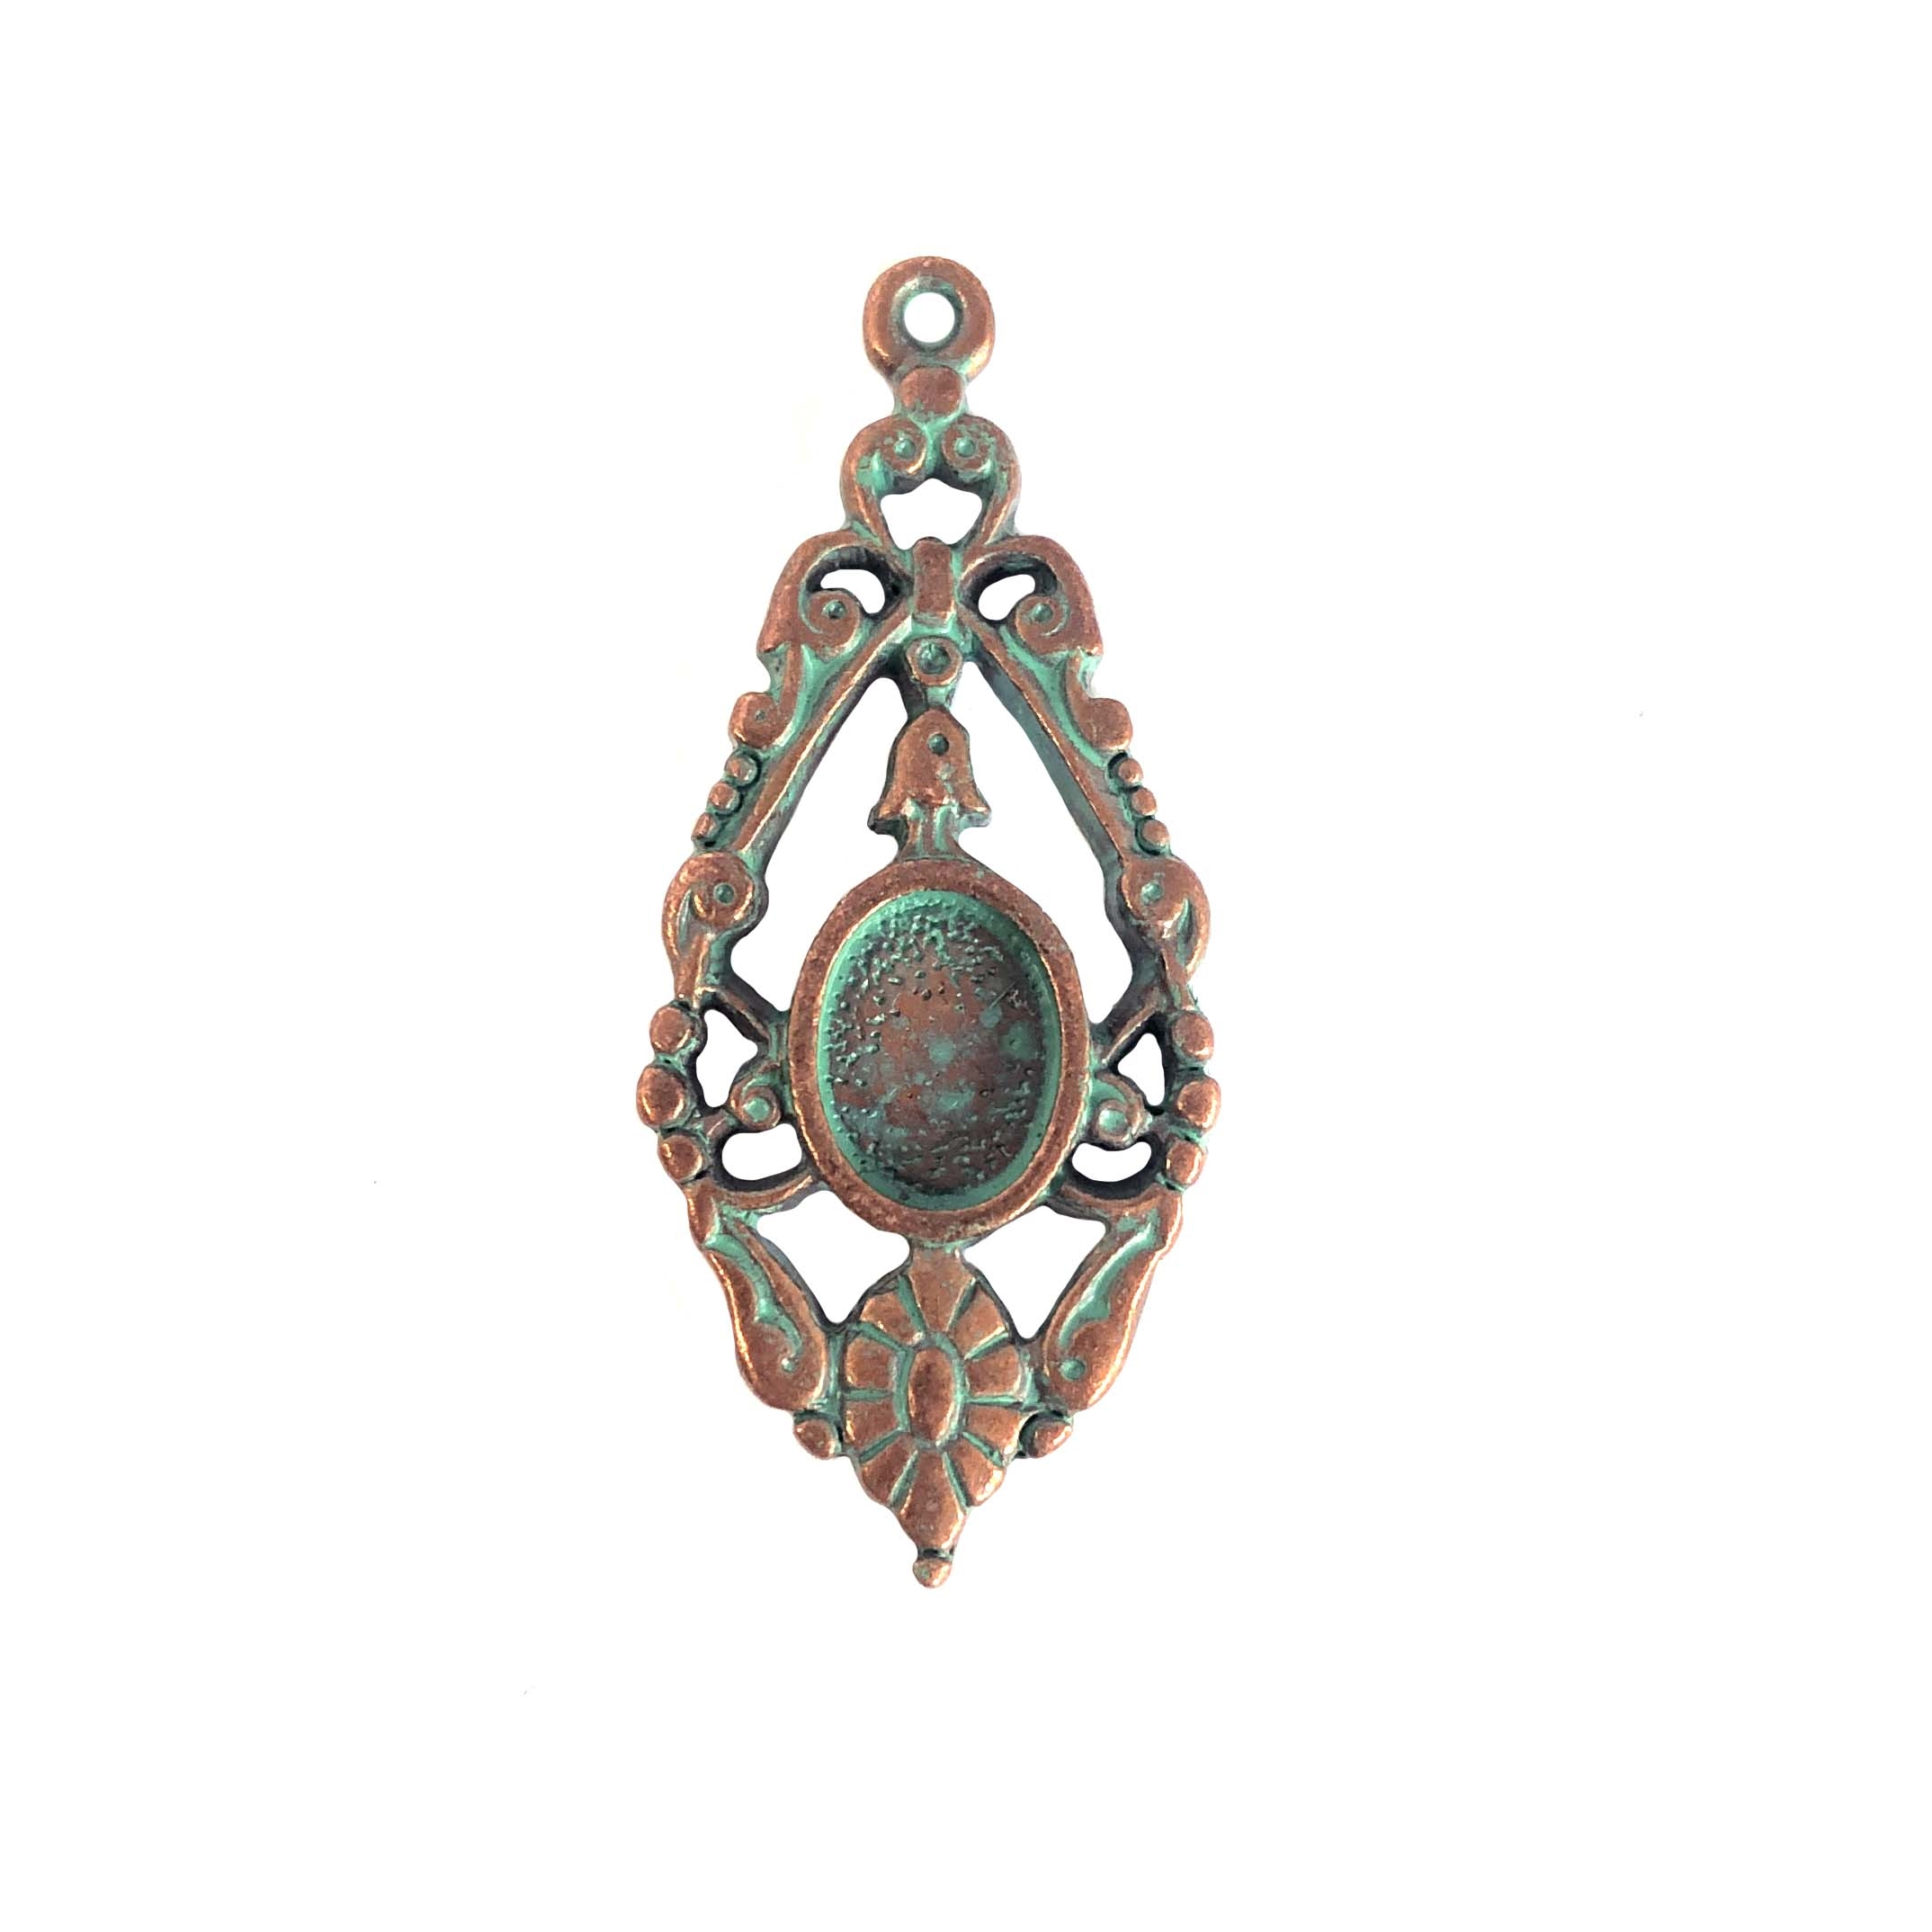 vintage pewter castings, B'sue by 1928, tear drop pendant, 0325, earring, weathered copper, nickel free finish, lead free pewter, mint green patina, made in the USA, designer jewelry, vintage jewelry supplies, 1928 Jewelry, B'sue Boutique, ear drop, mount